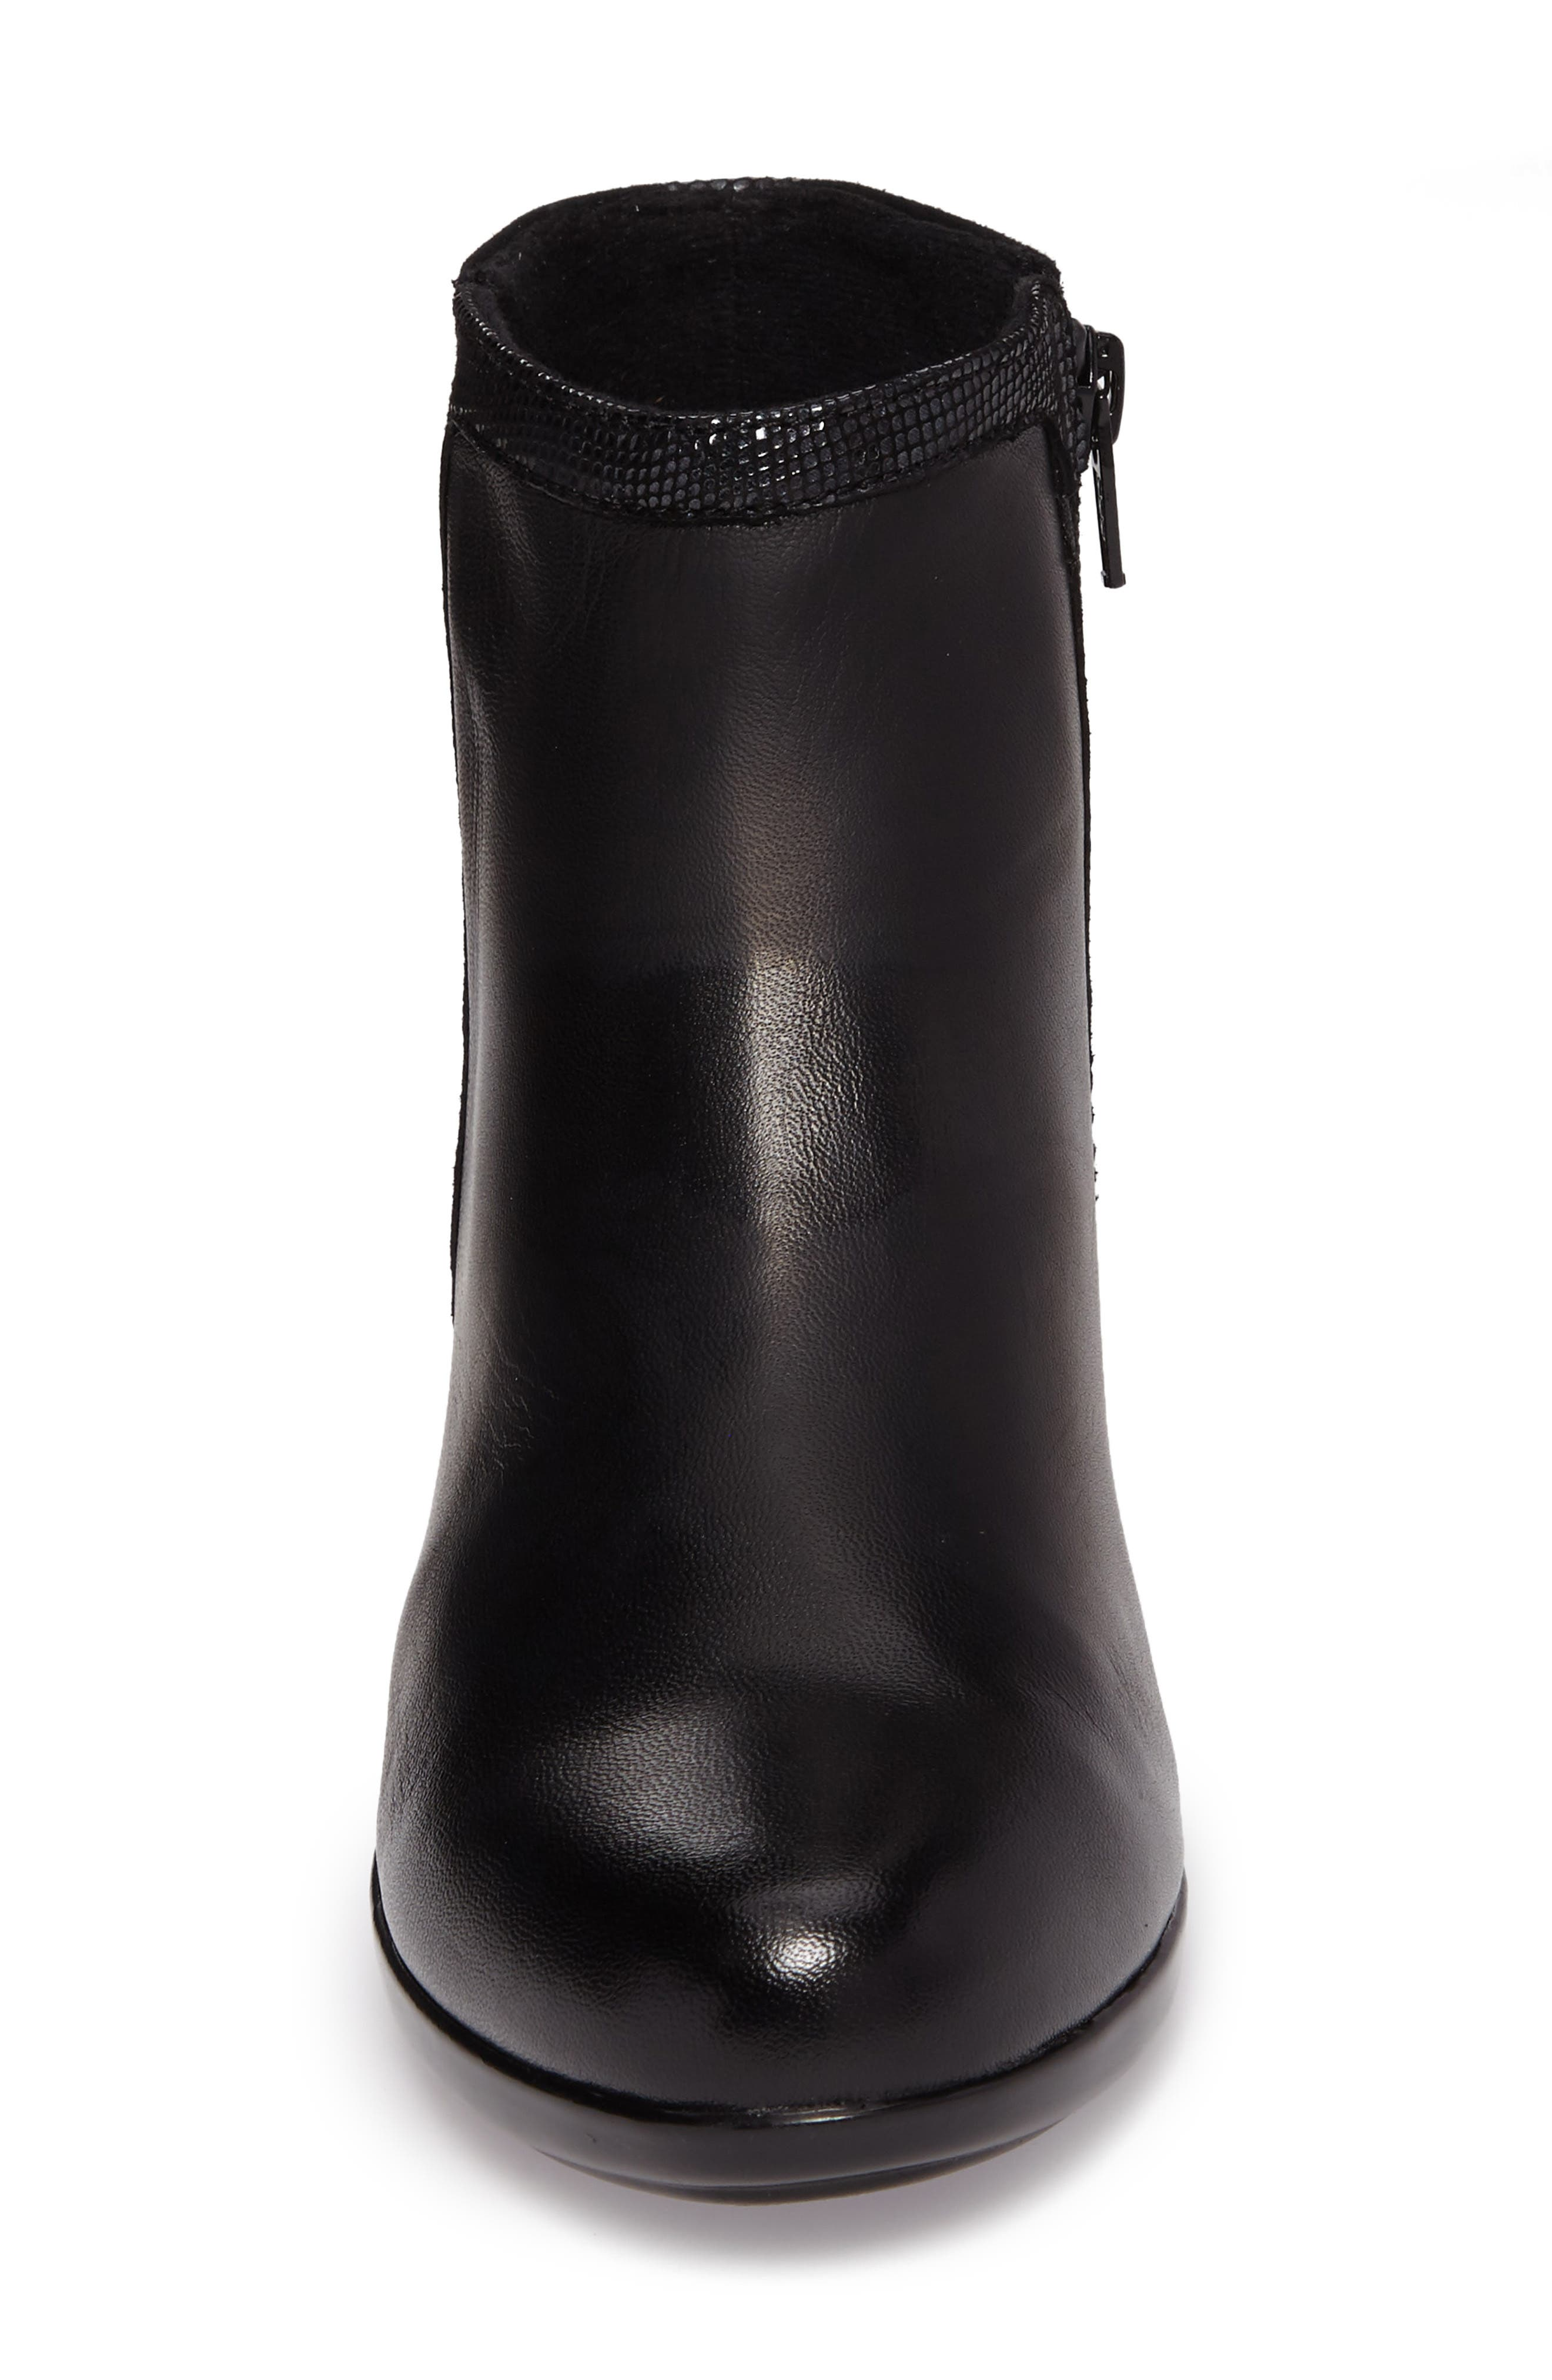 Lexee Wateproof Bootie,                             Alternate thumbnail 4, color,                             Black Leather